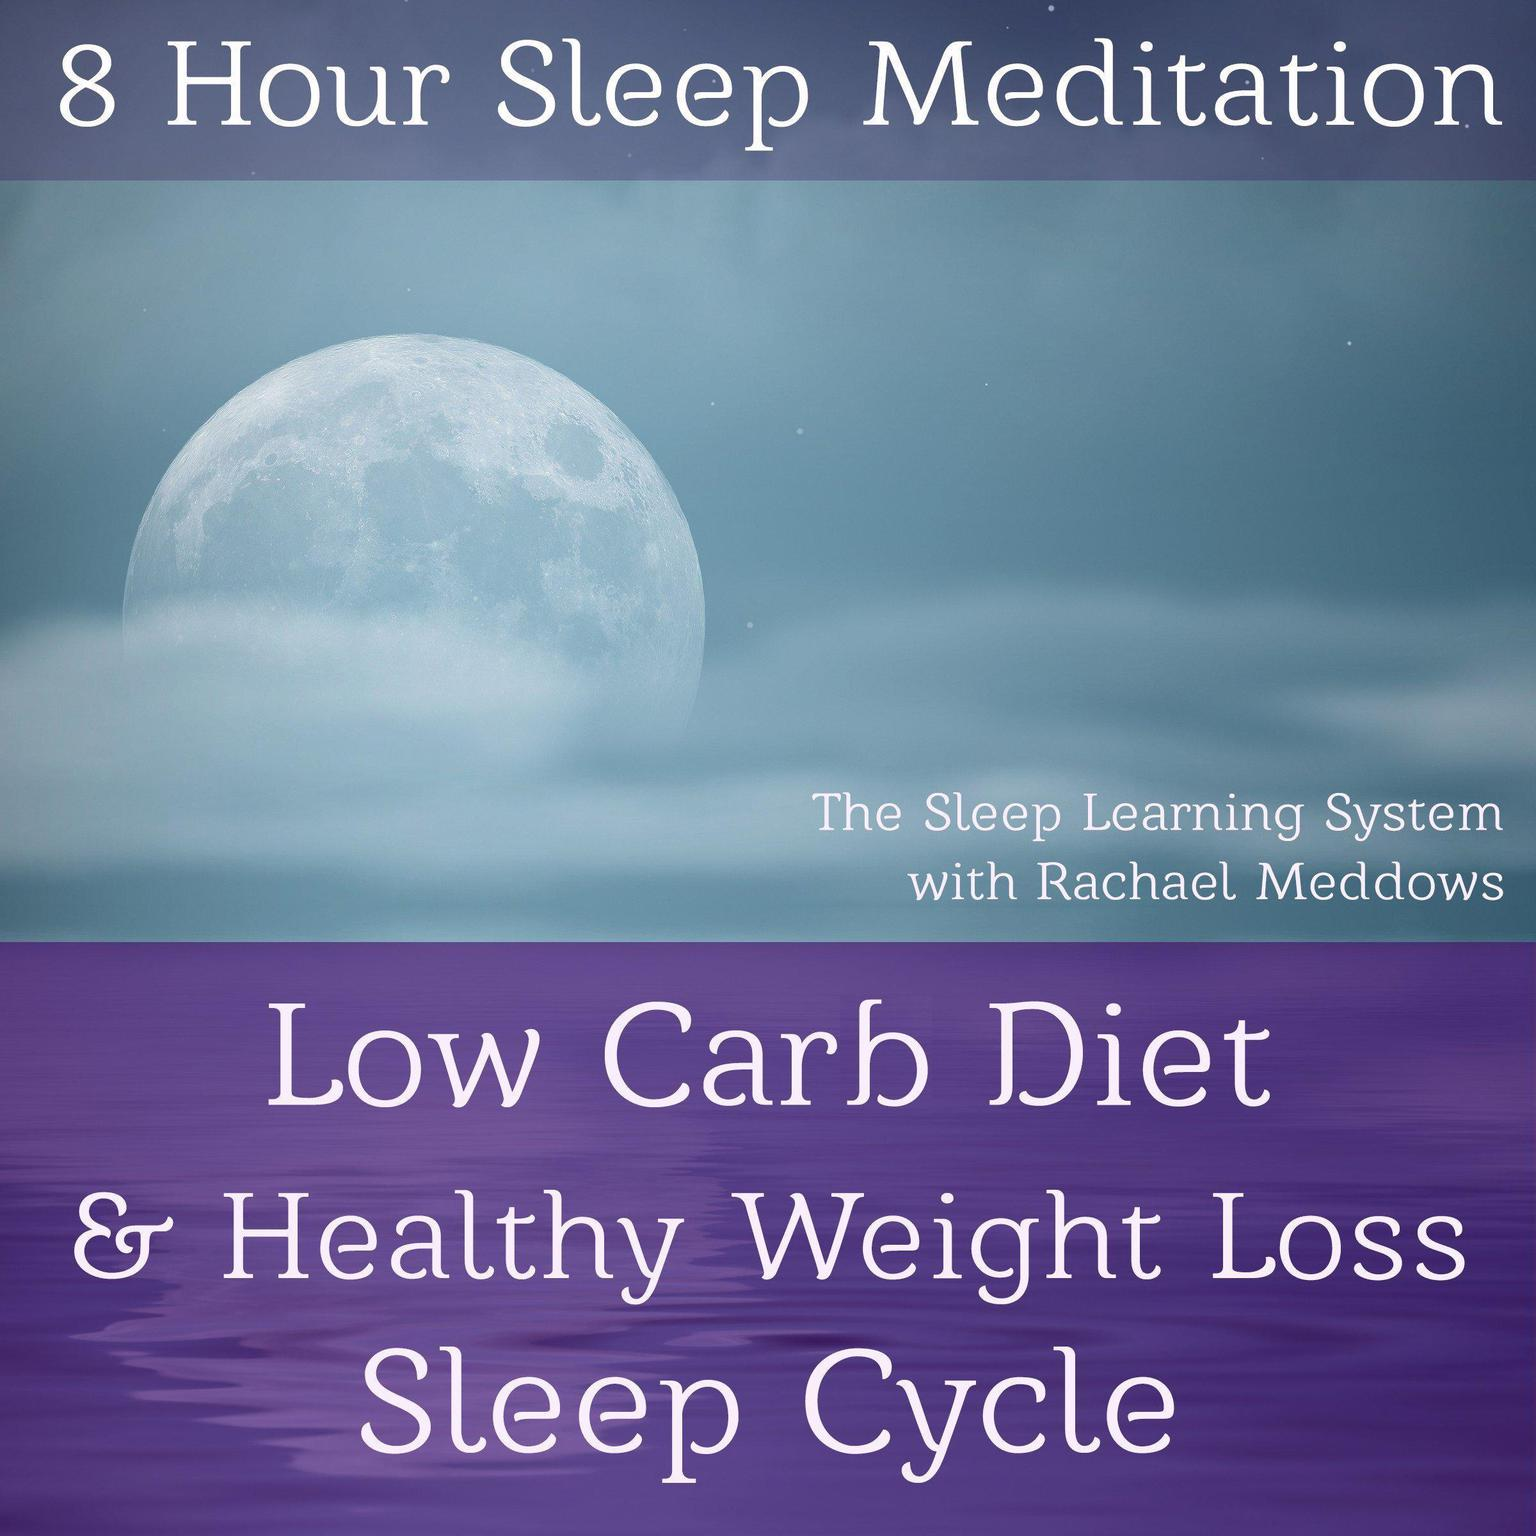 8 Hour Sleep Meditation - Low Carb Diet & Healthy Weight Loss Sleep Cycle (The Sleep Learning System with Rachael Meddows) Audiobook, by Joel Thielke